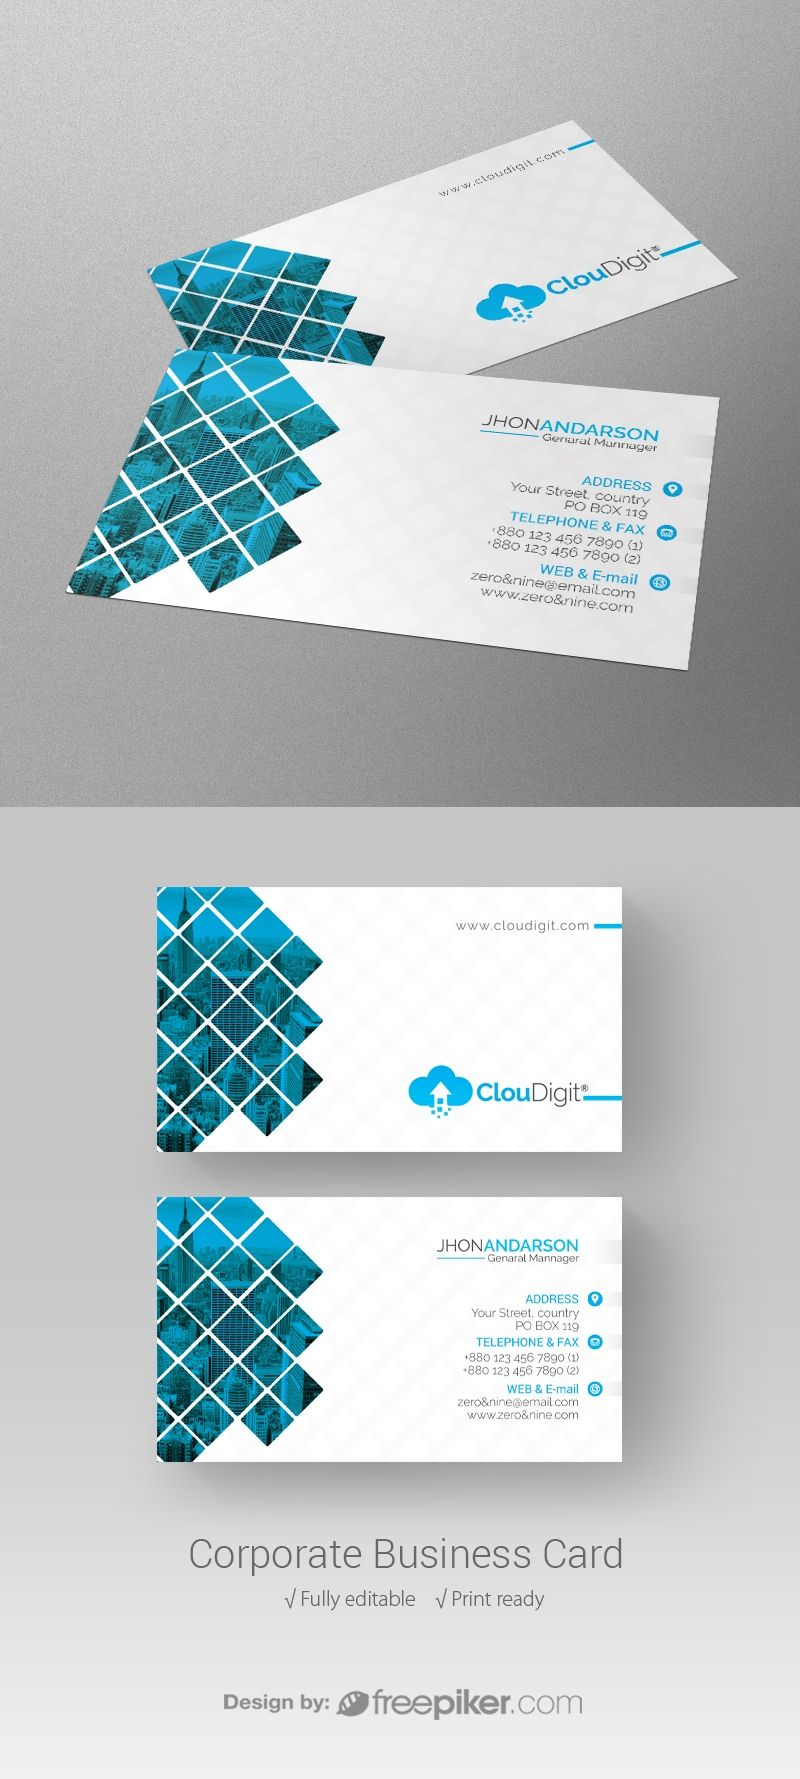 Corporate Business Card Cards Business Cards Business Card Design